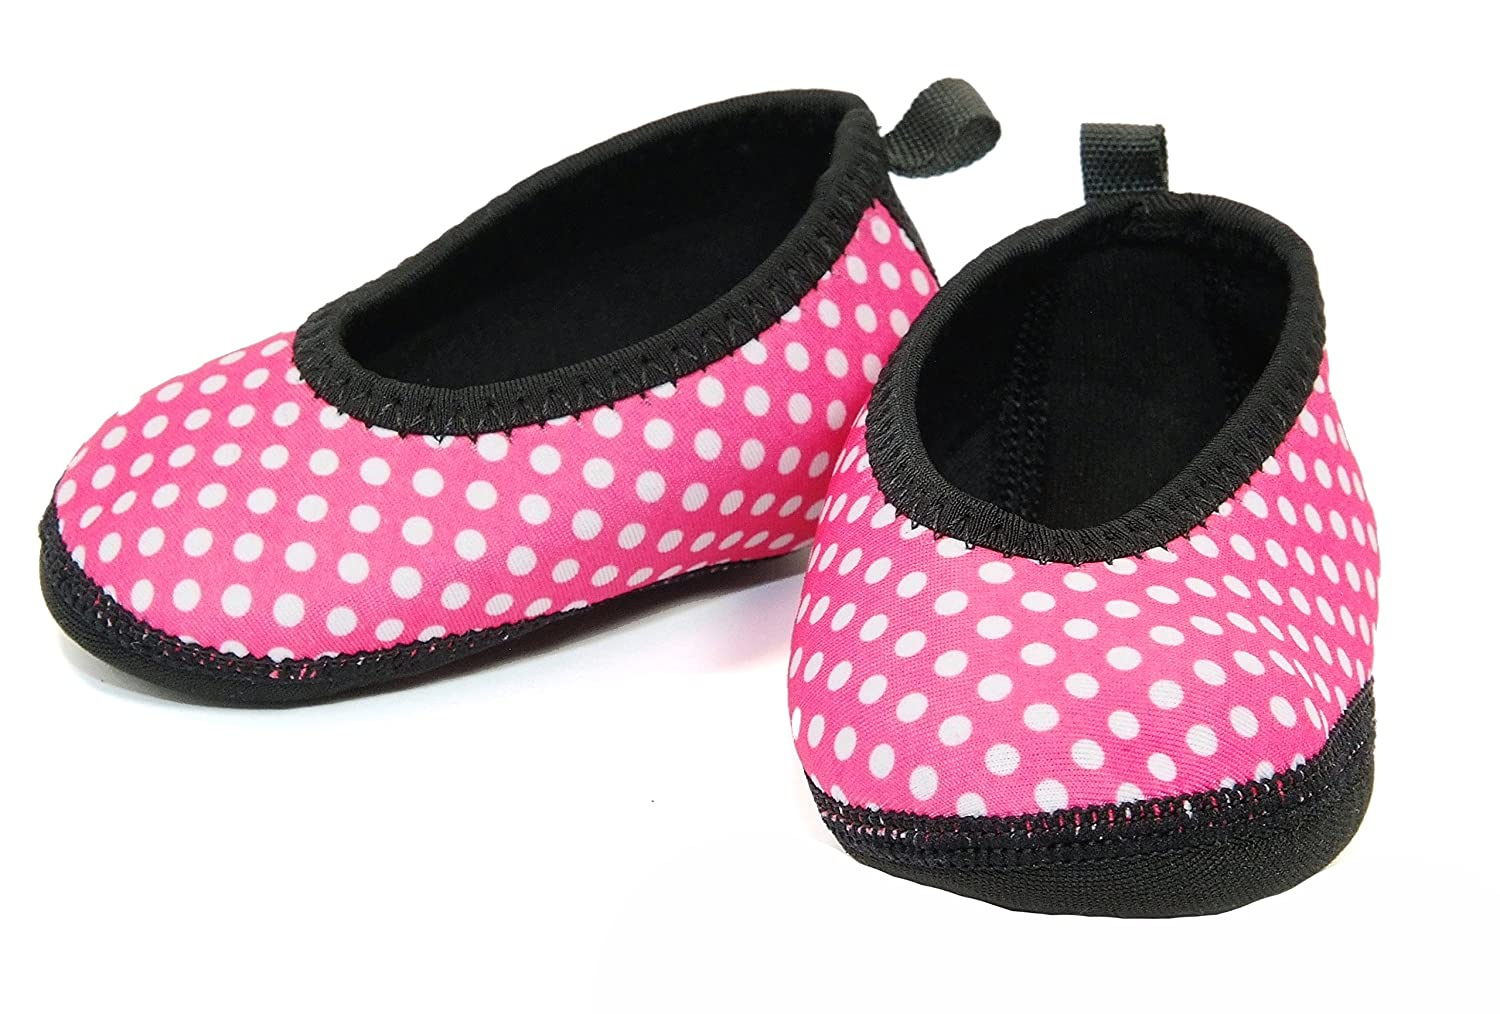 Nufoot Baby Slippers Ballet Flats, Pink with White Polka Dots, 0-6 Months